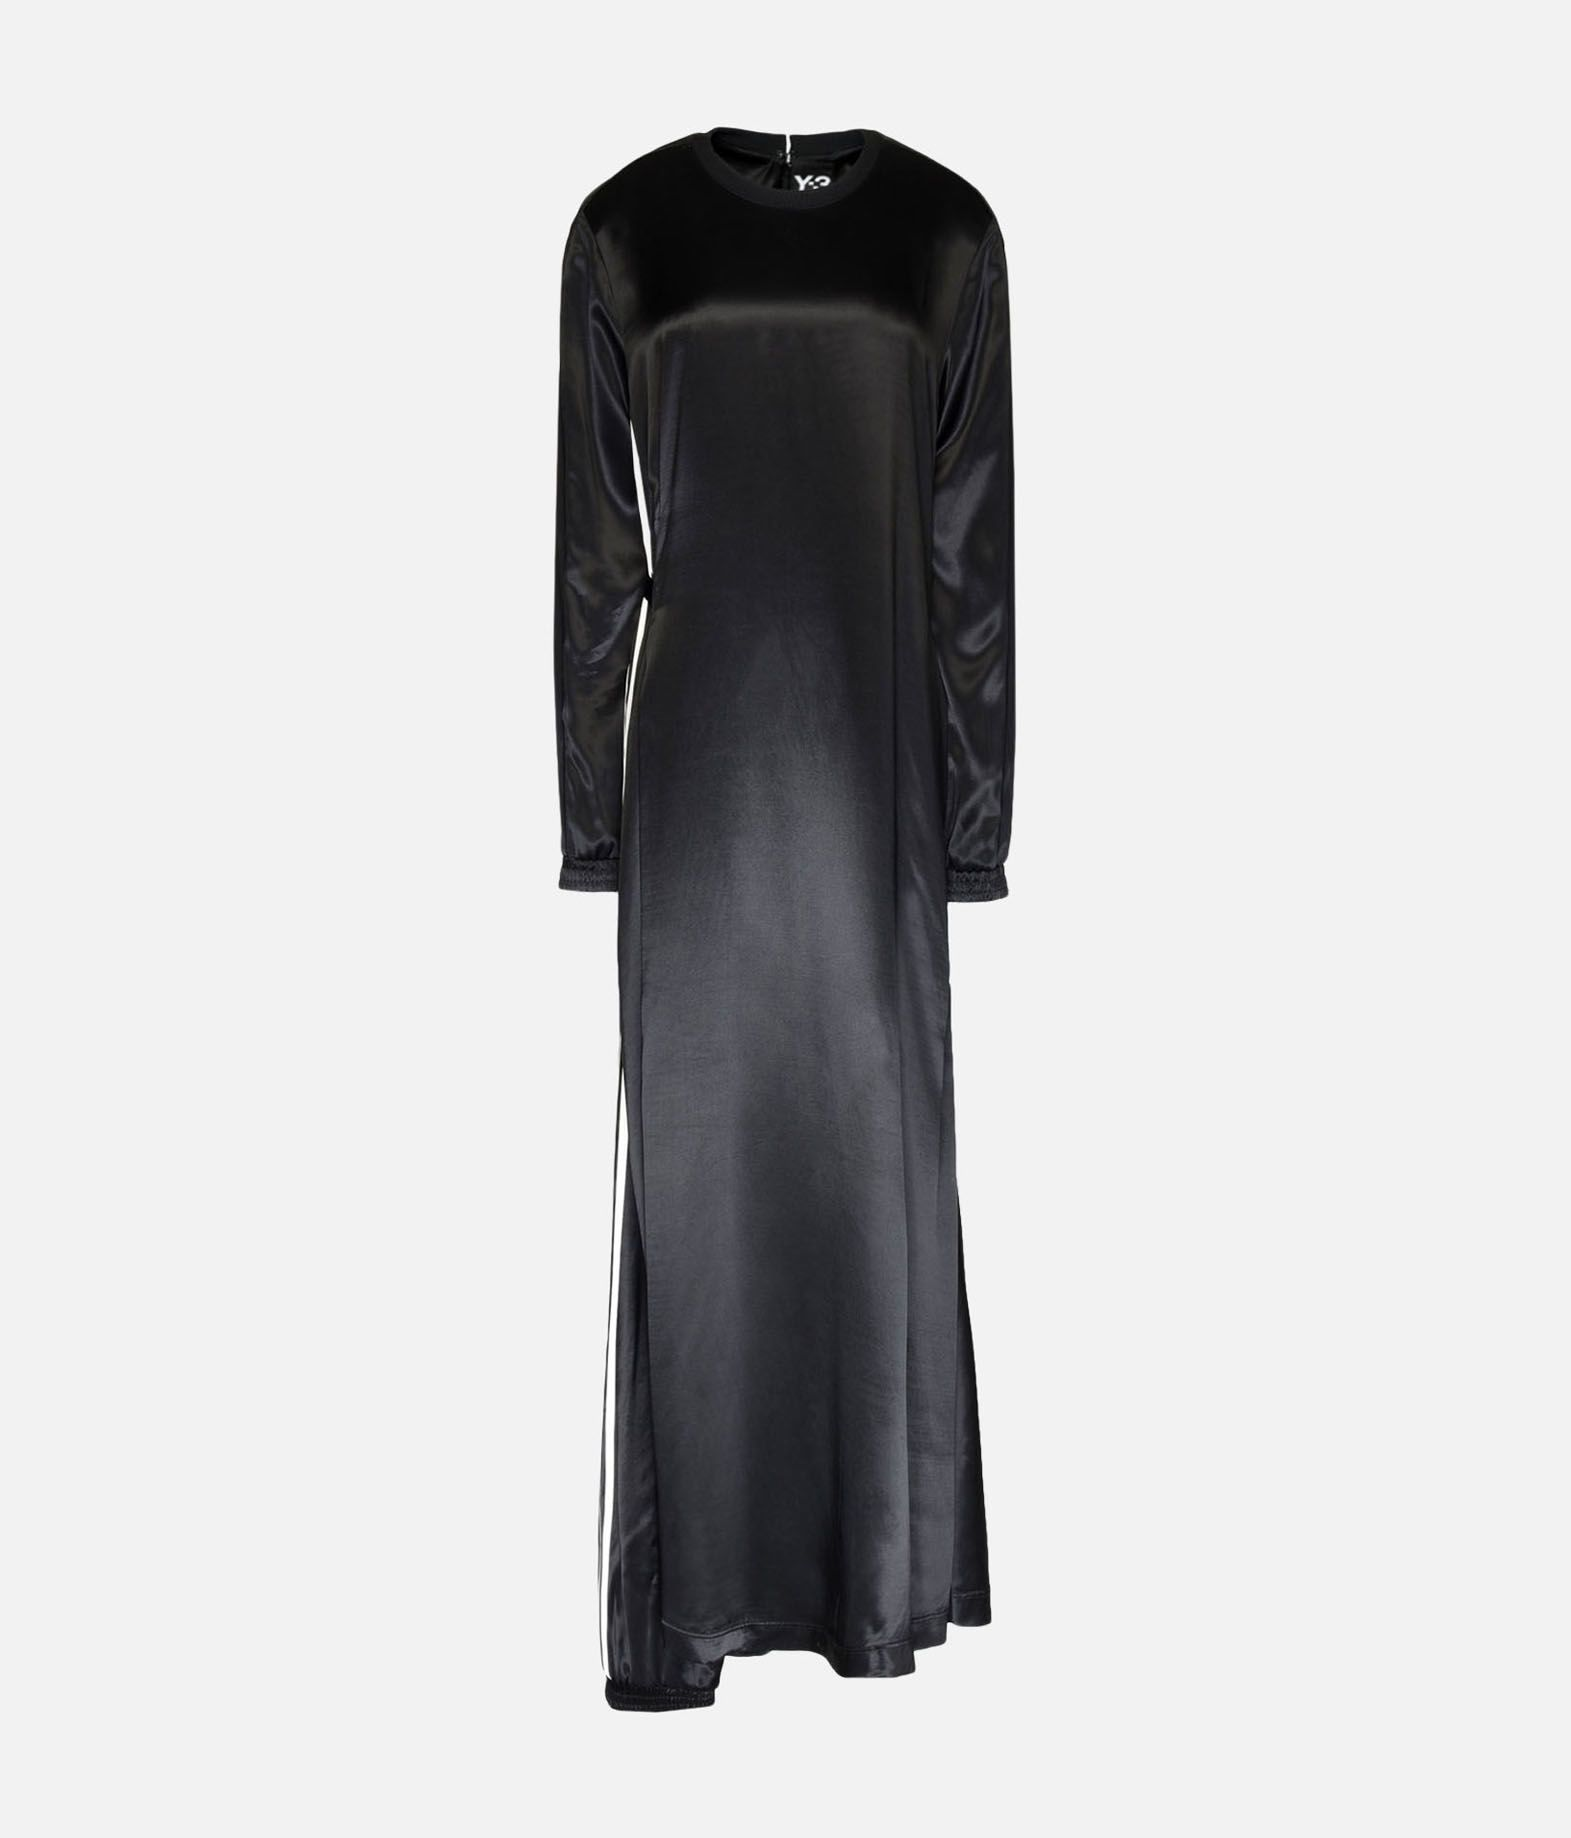 Y-3 Y-3 3-Stripes Lux Track Dress Long dress Woman f